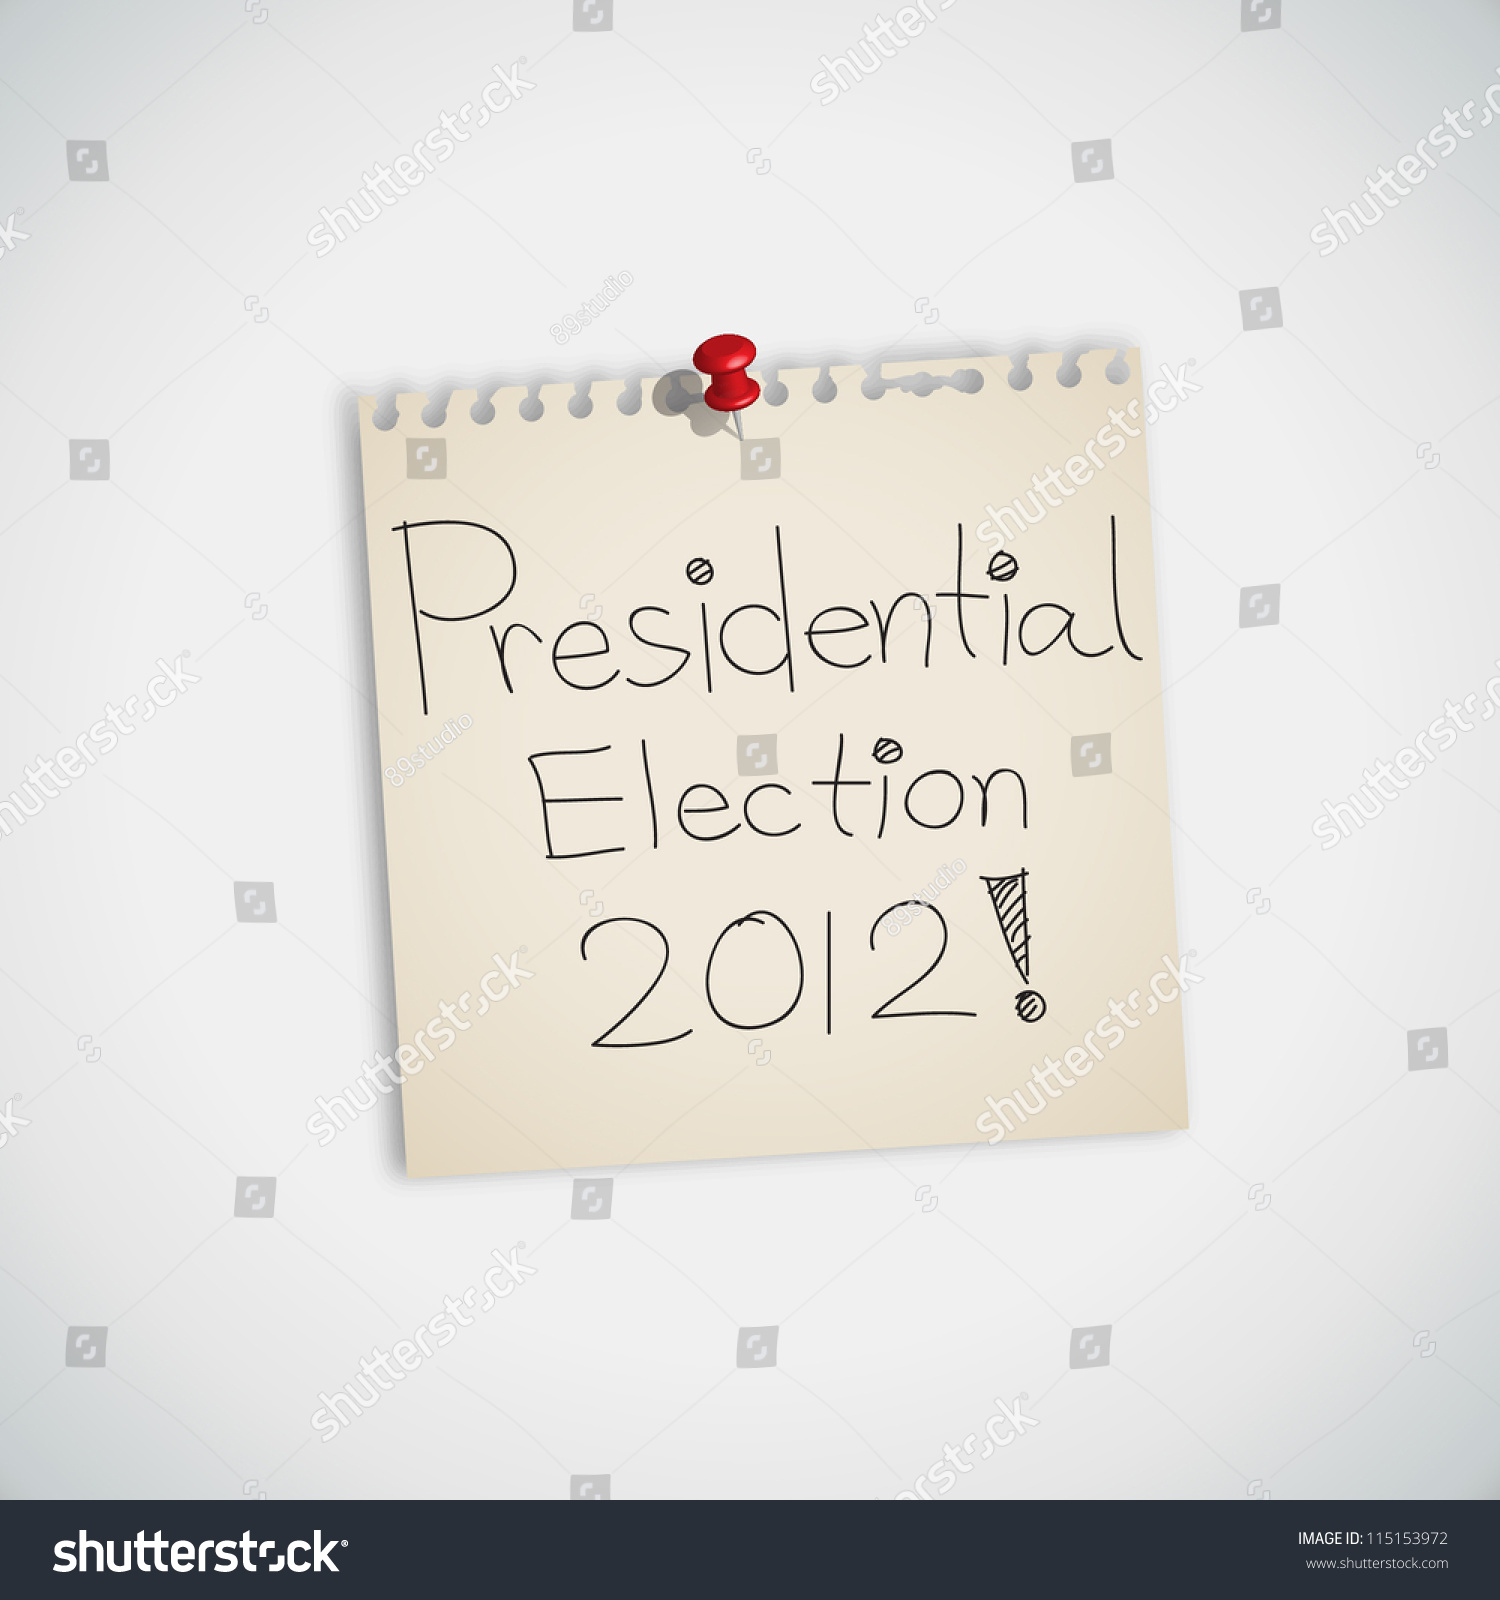 essay on 2012 presidential election Intro to american politics 11/17/13 2012 election essay mitt romney and his campaign staff believed that victory in the 2012 presidential election was a sure bet and that the republican party would dominate congress.